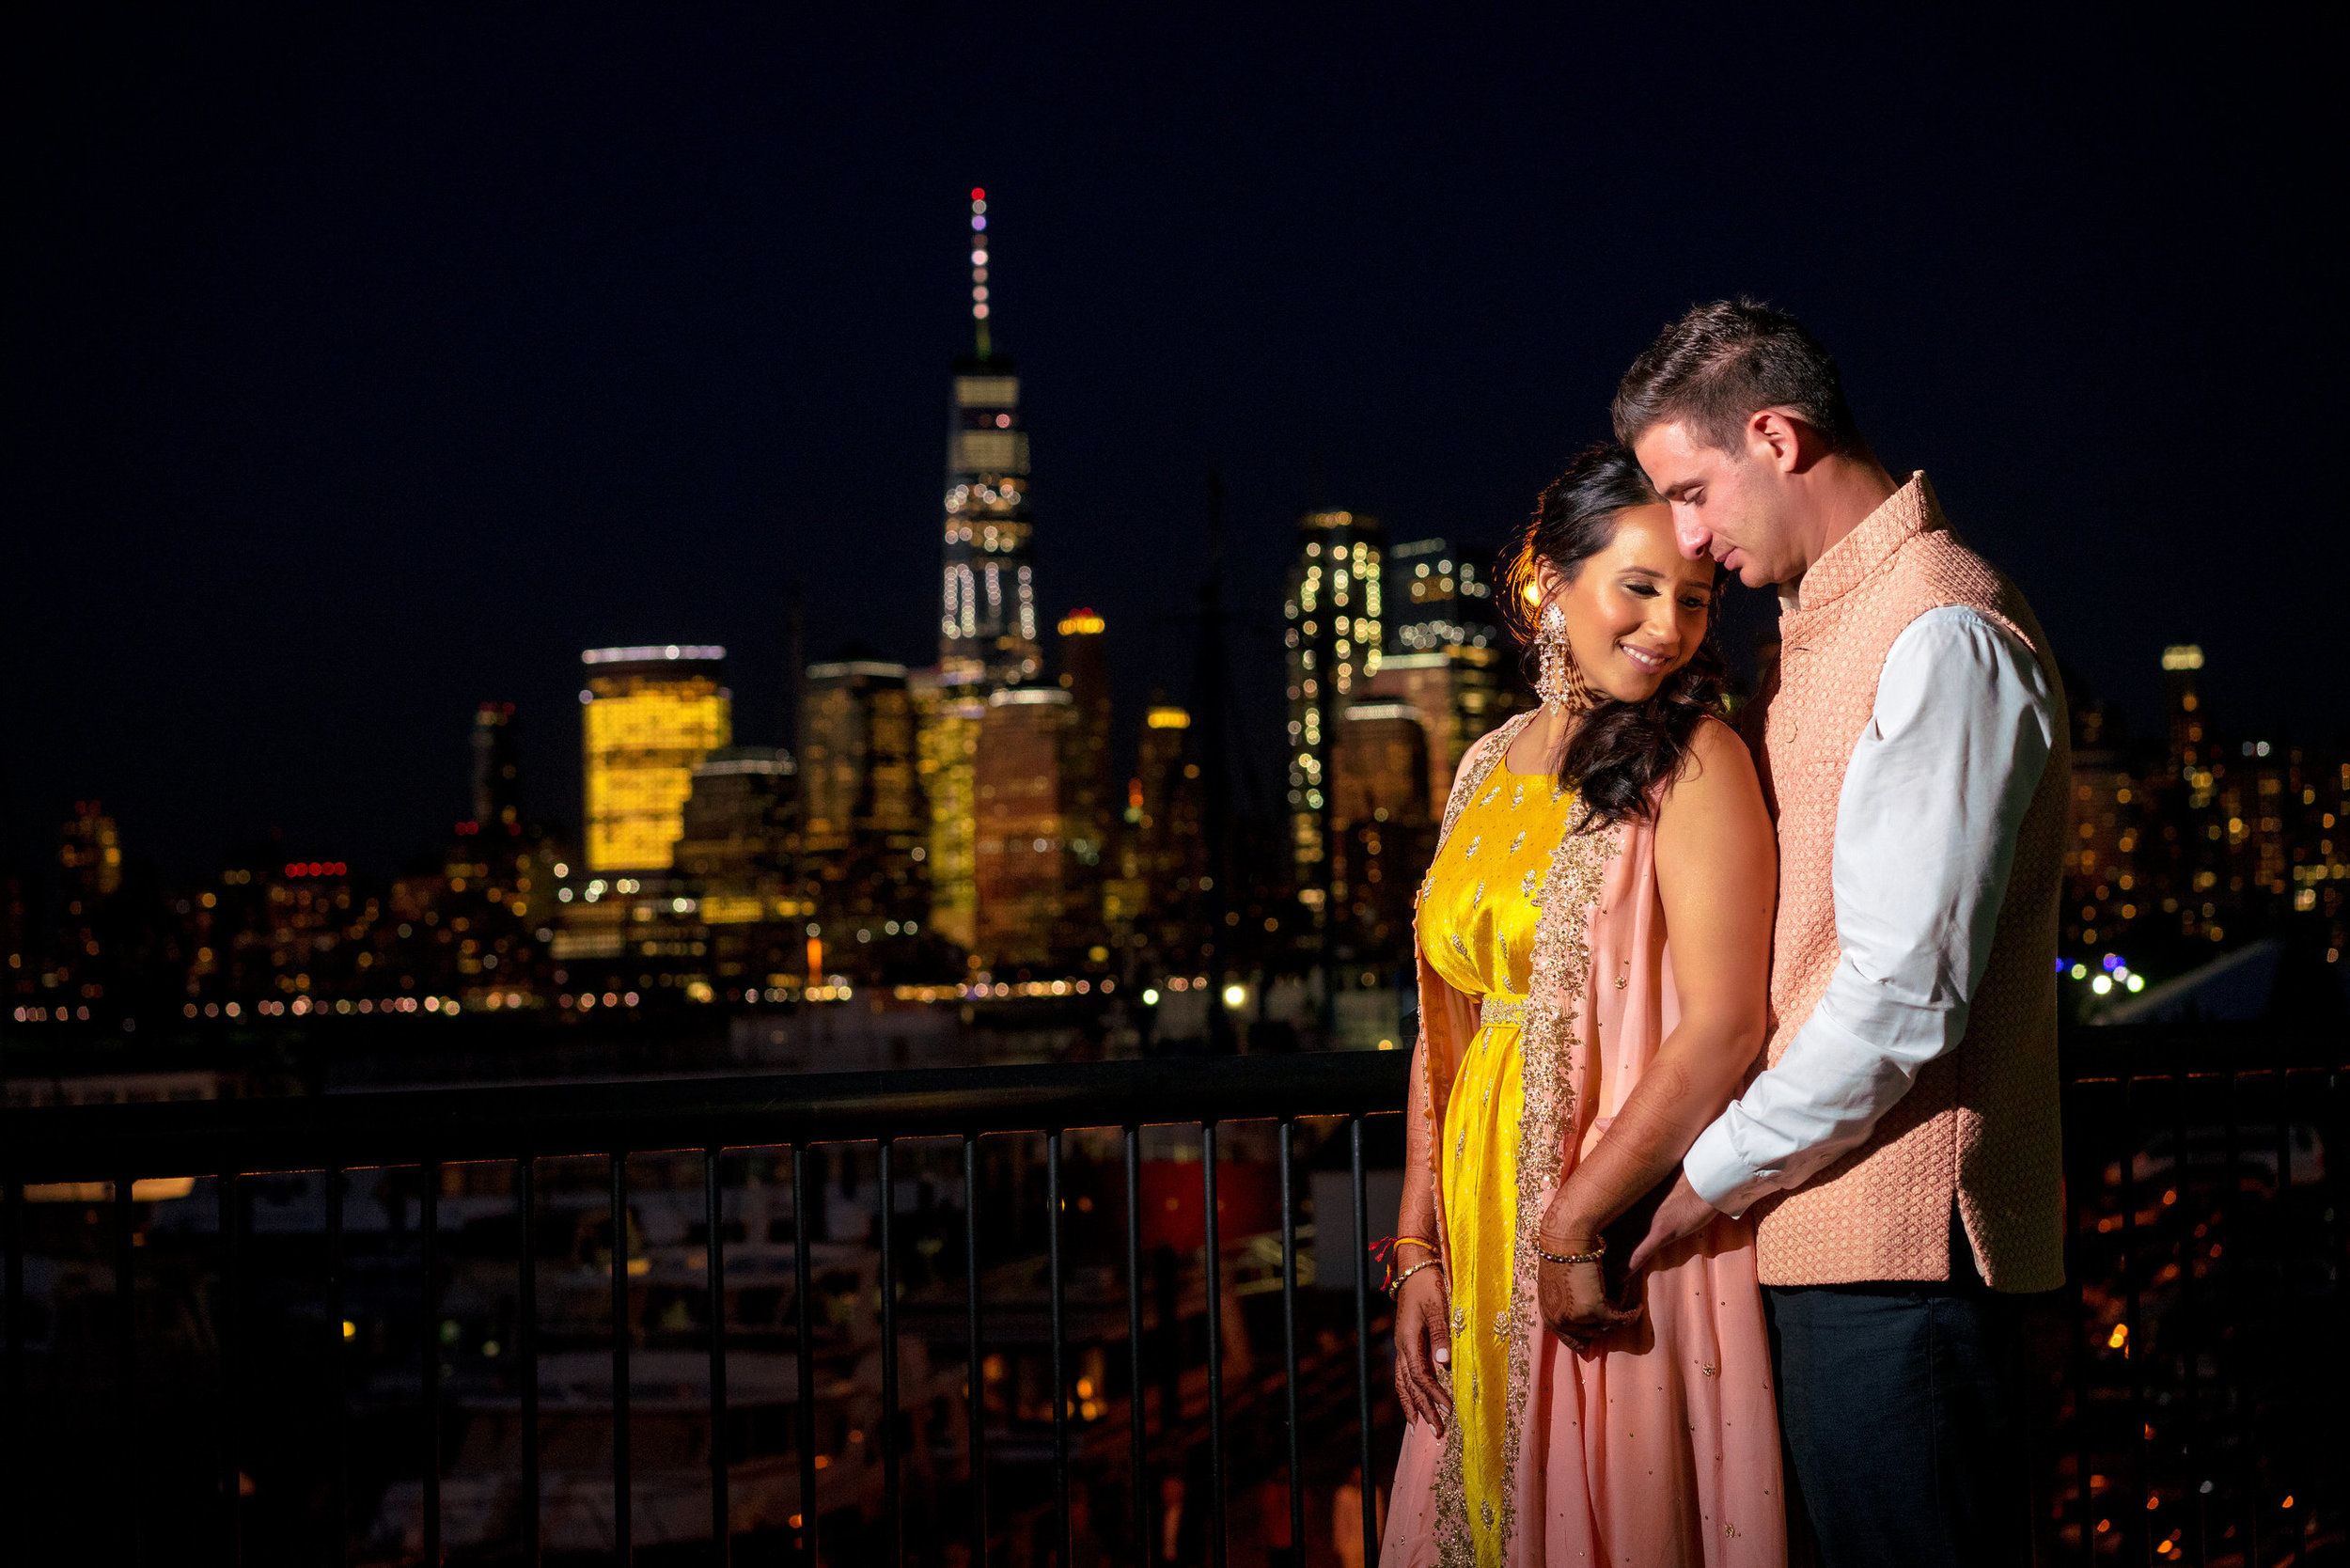 INDIAN WEDDING BRIDE AND GROOM CITYSCAPE VIEW.JPG